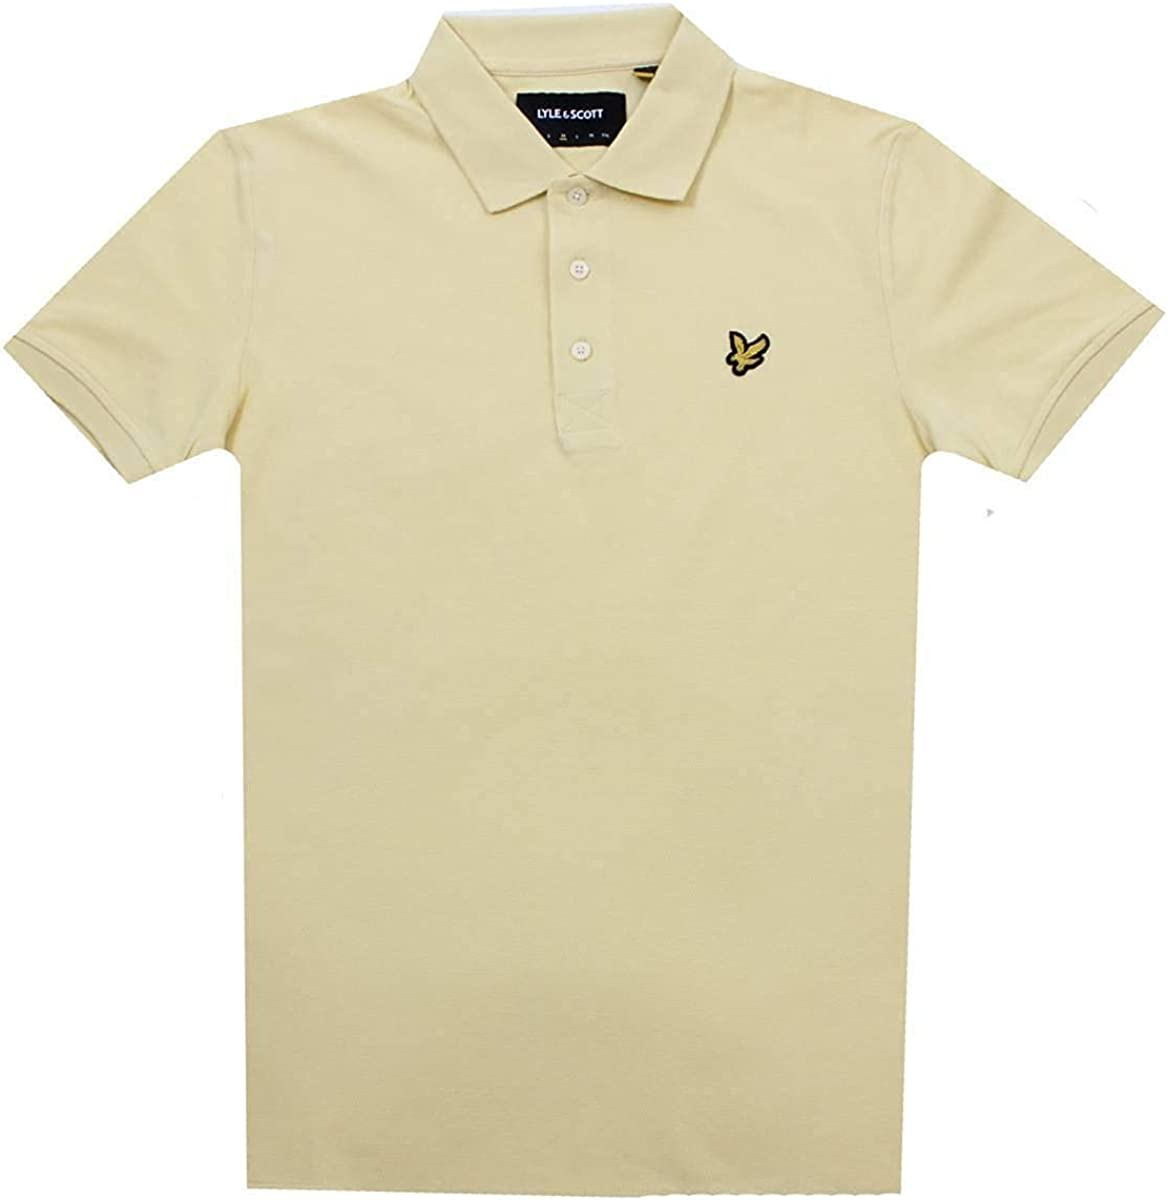 Lyle & Scott Polo M/C Uomo Mod. SP400 Z458 Yellow XS: Amazon.es ...